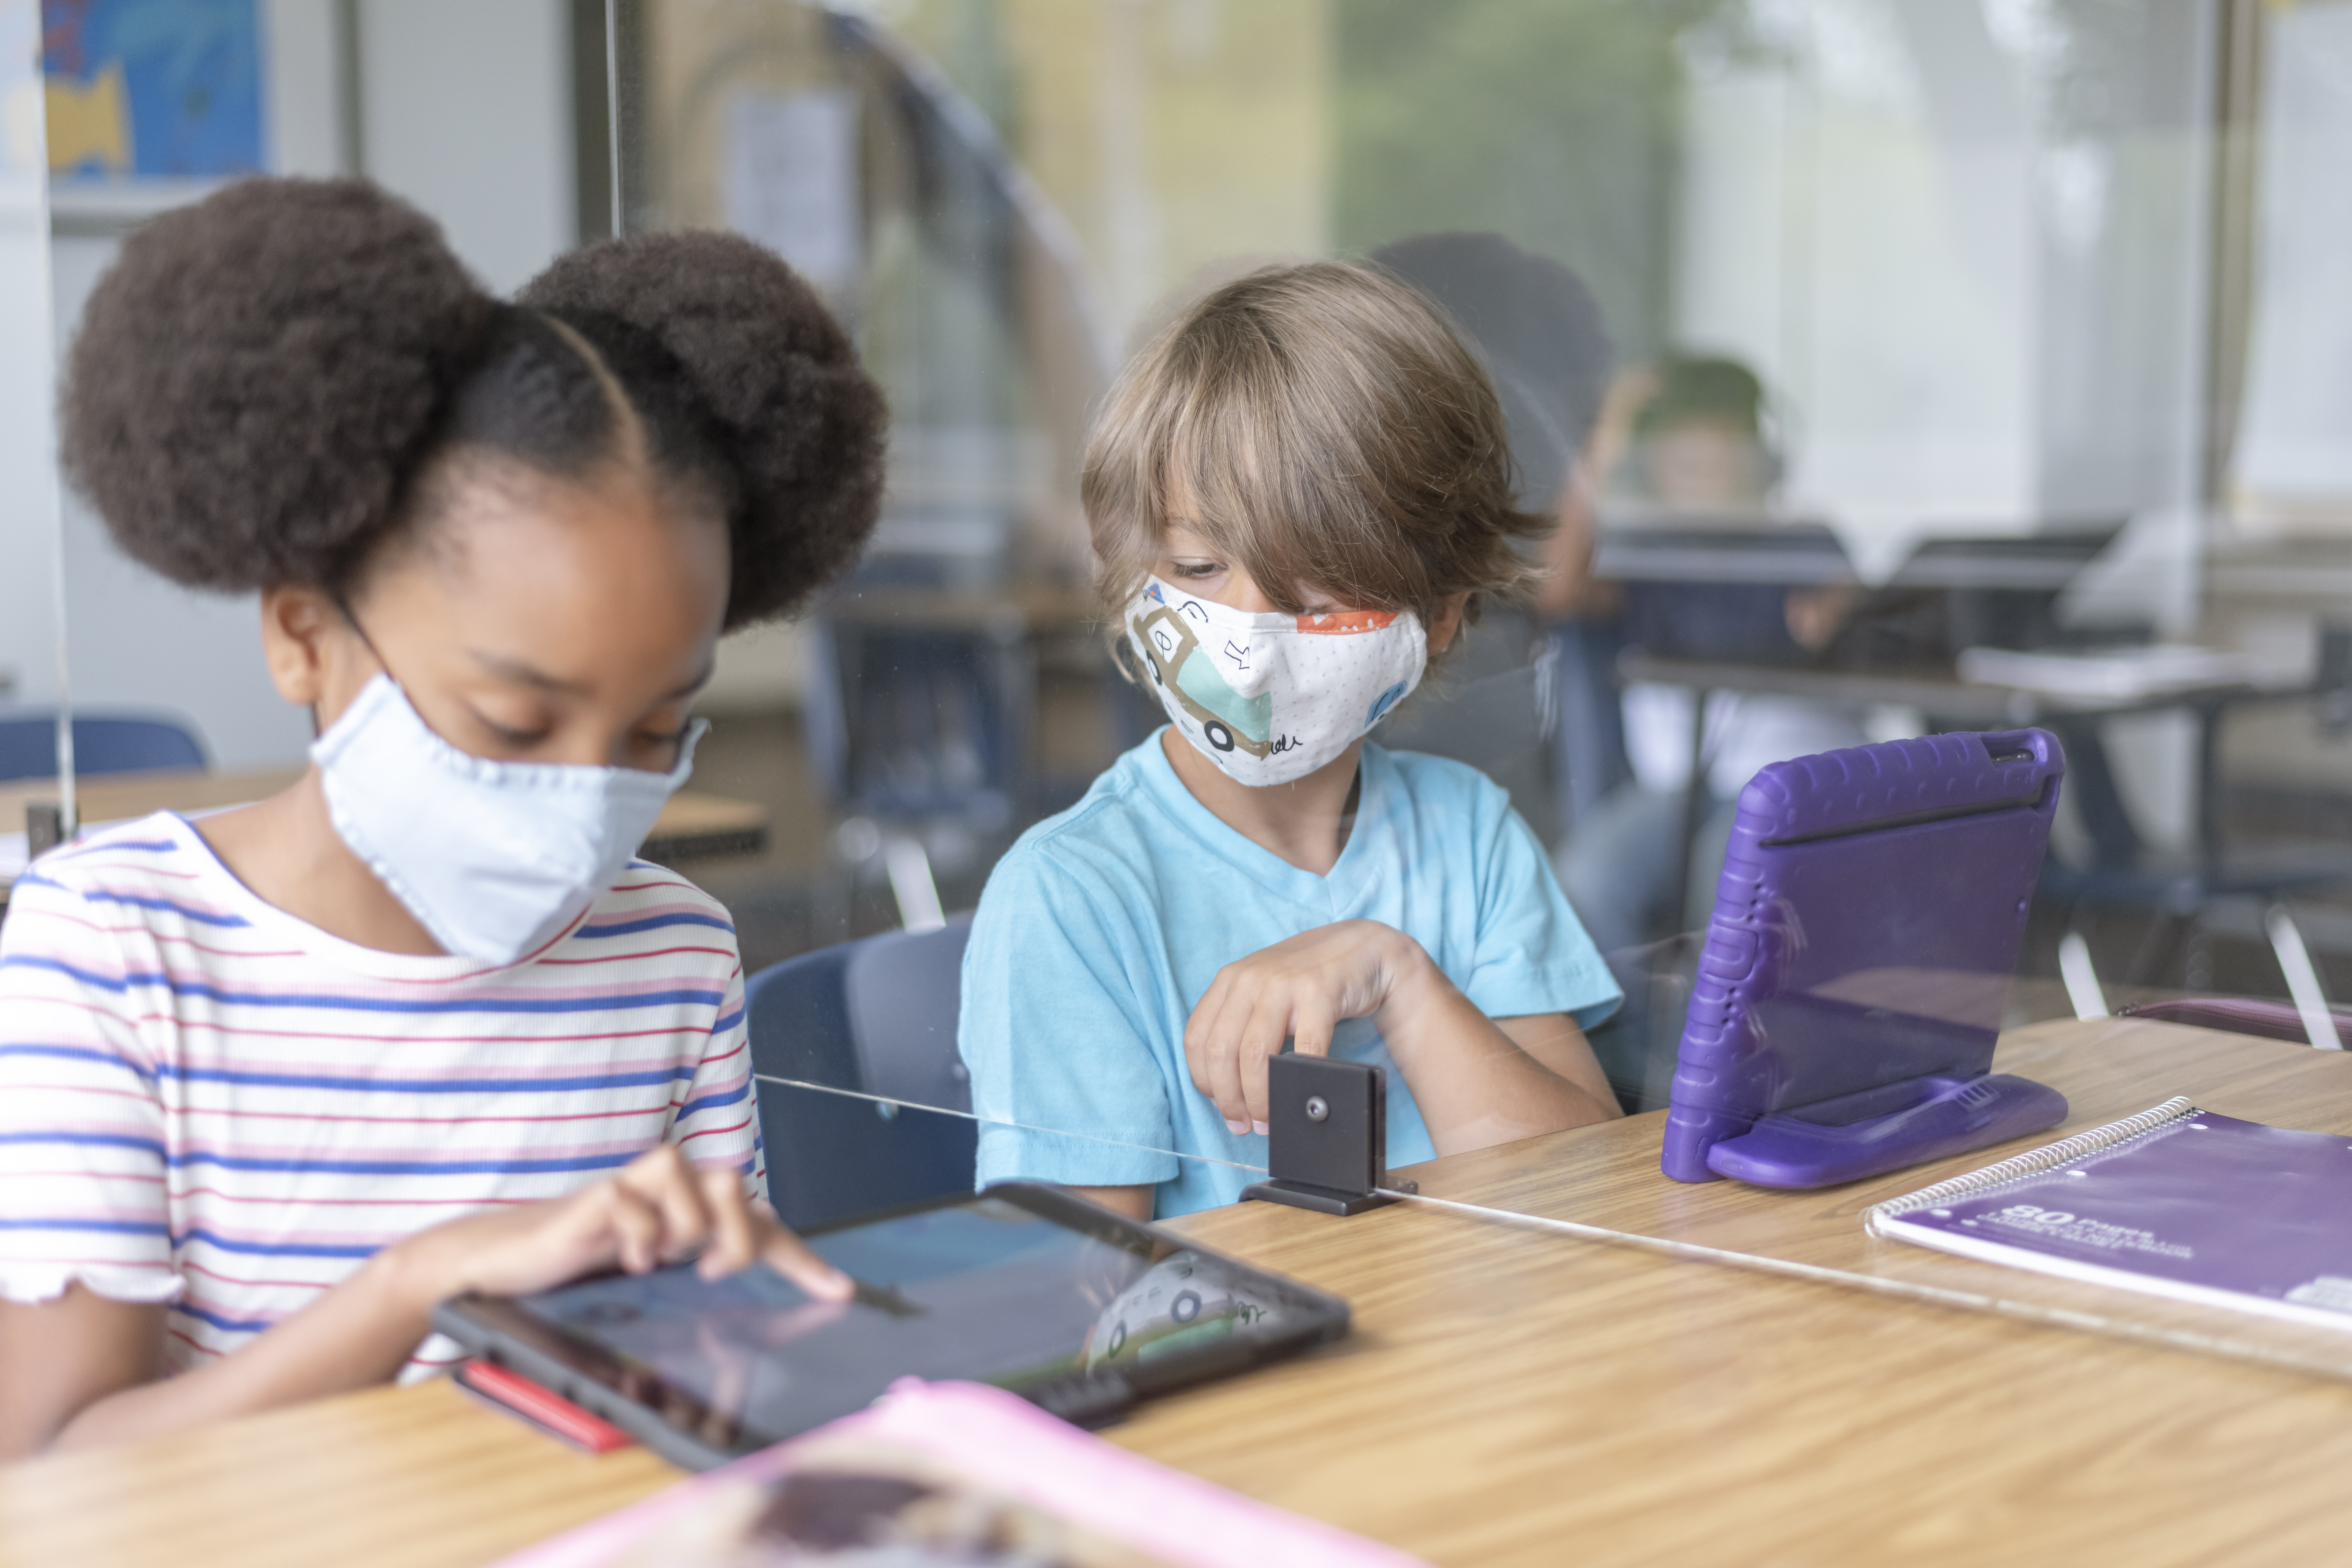 two children in classrooms, wearing masks, while on tablets